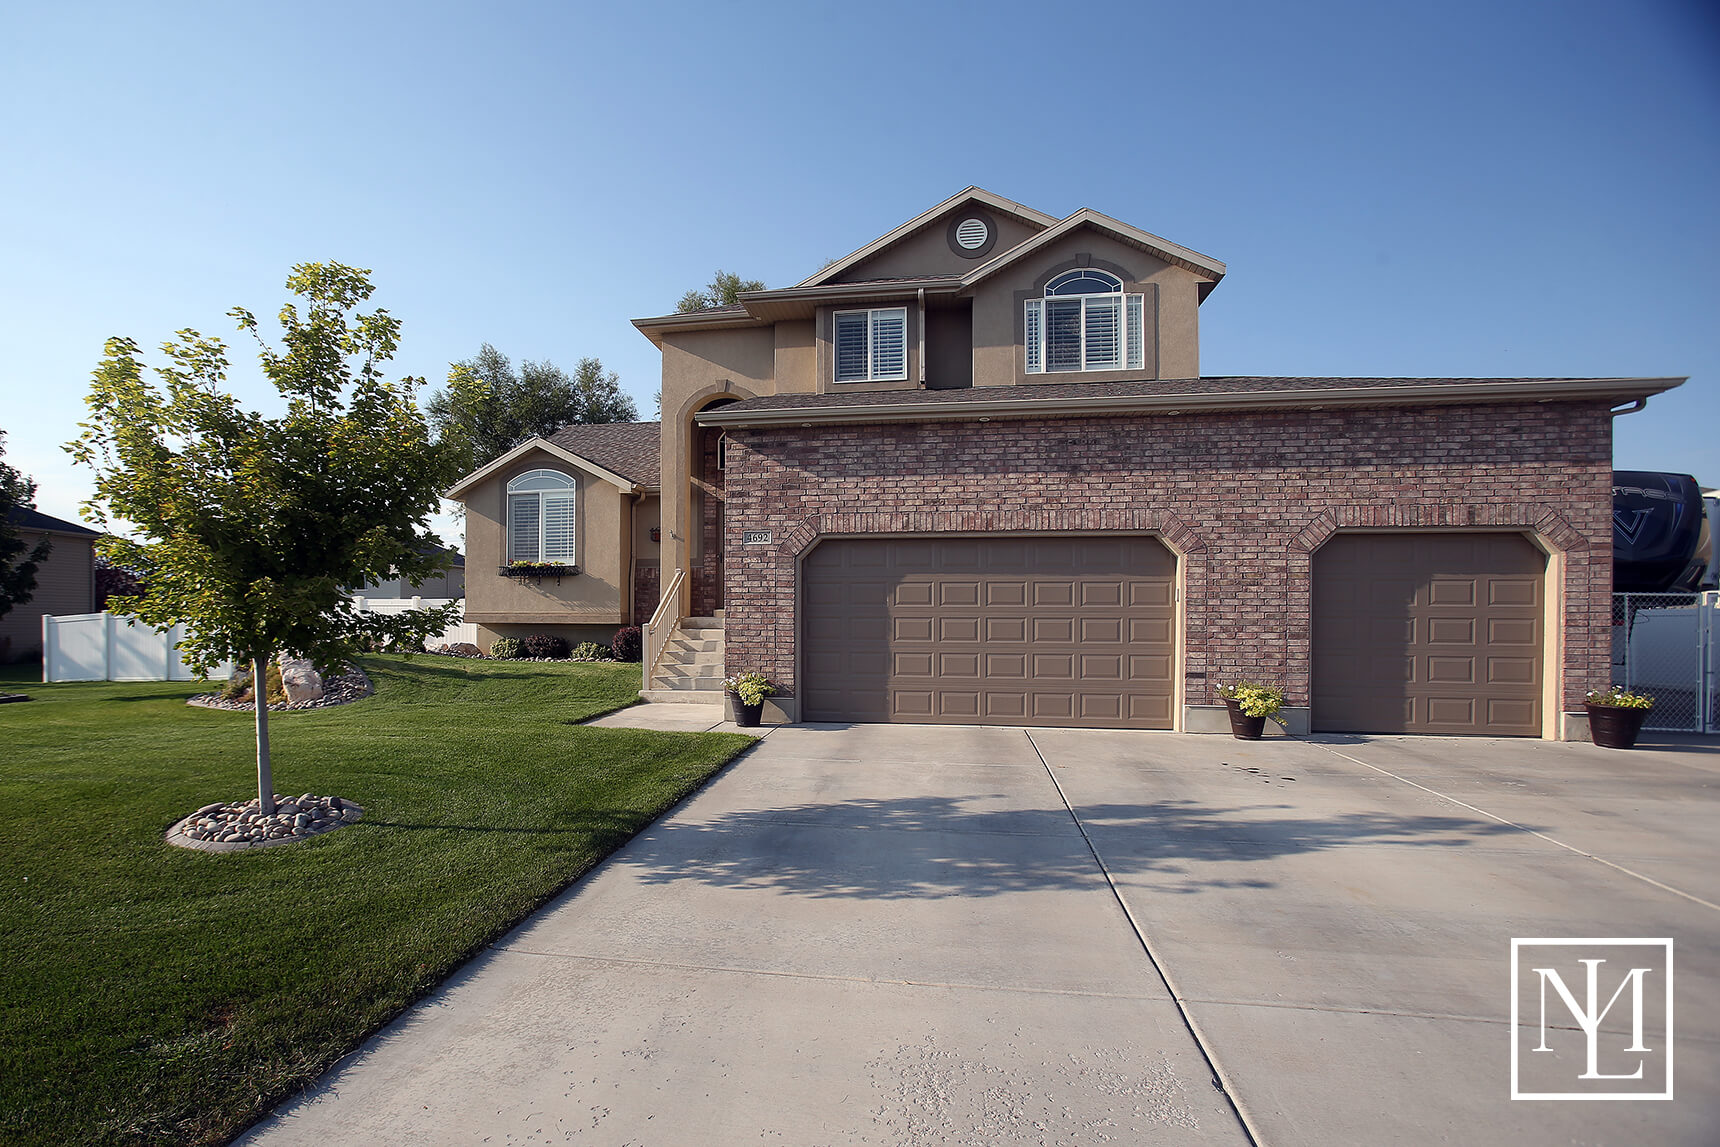 4692 W 250 N West Point Ut 84015 03